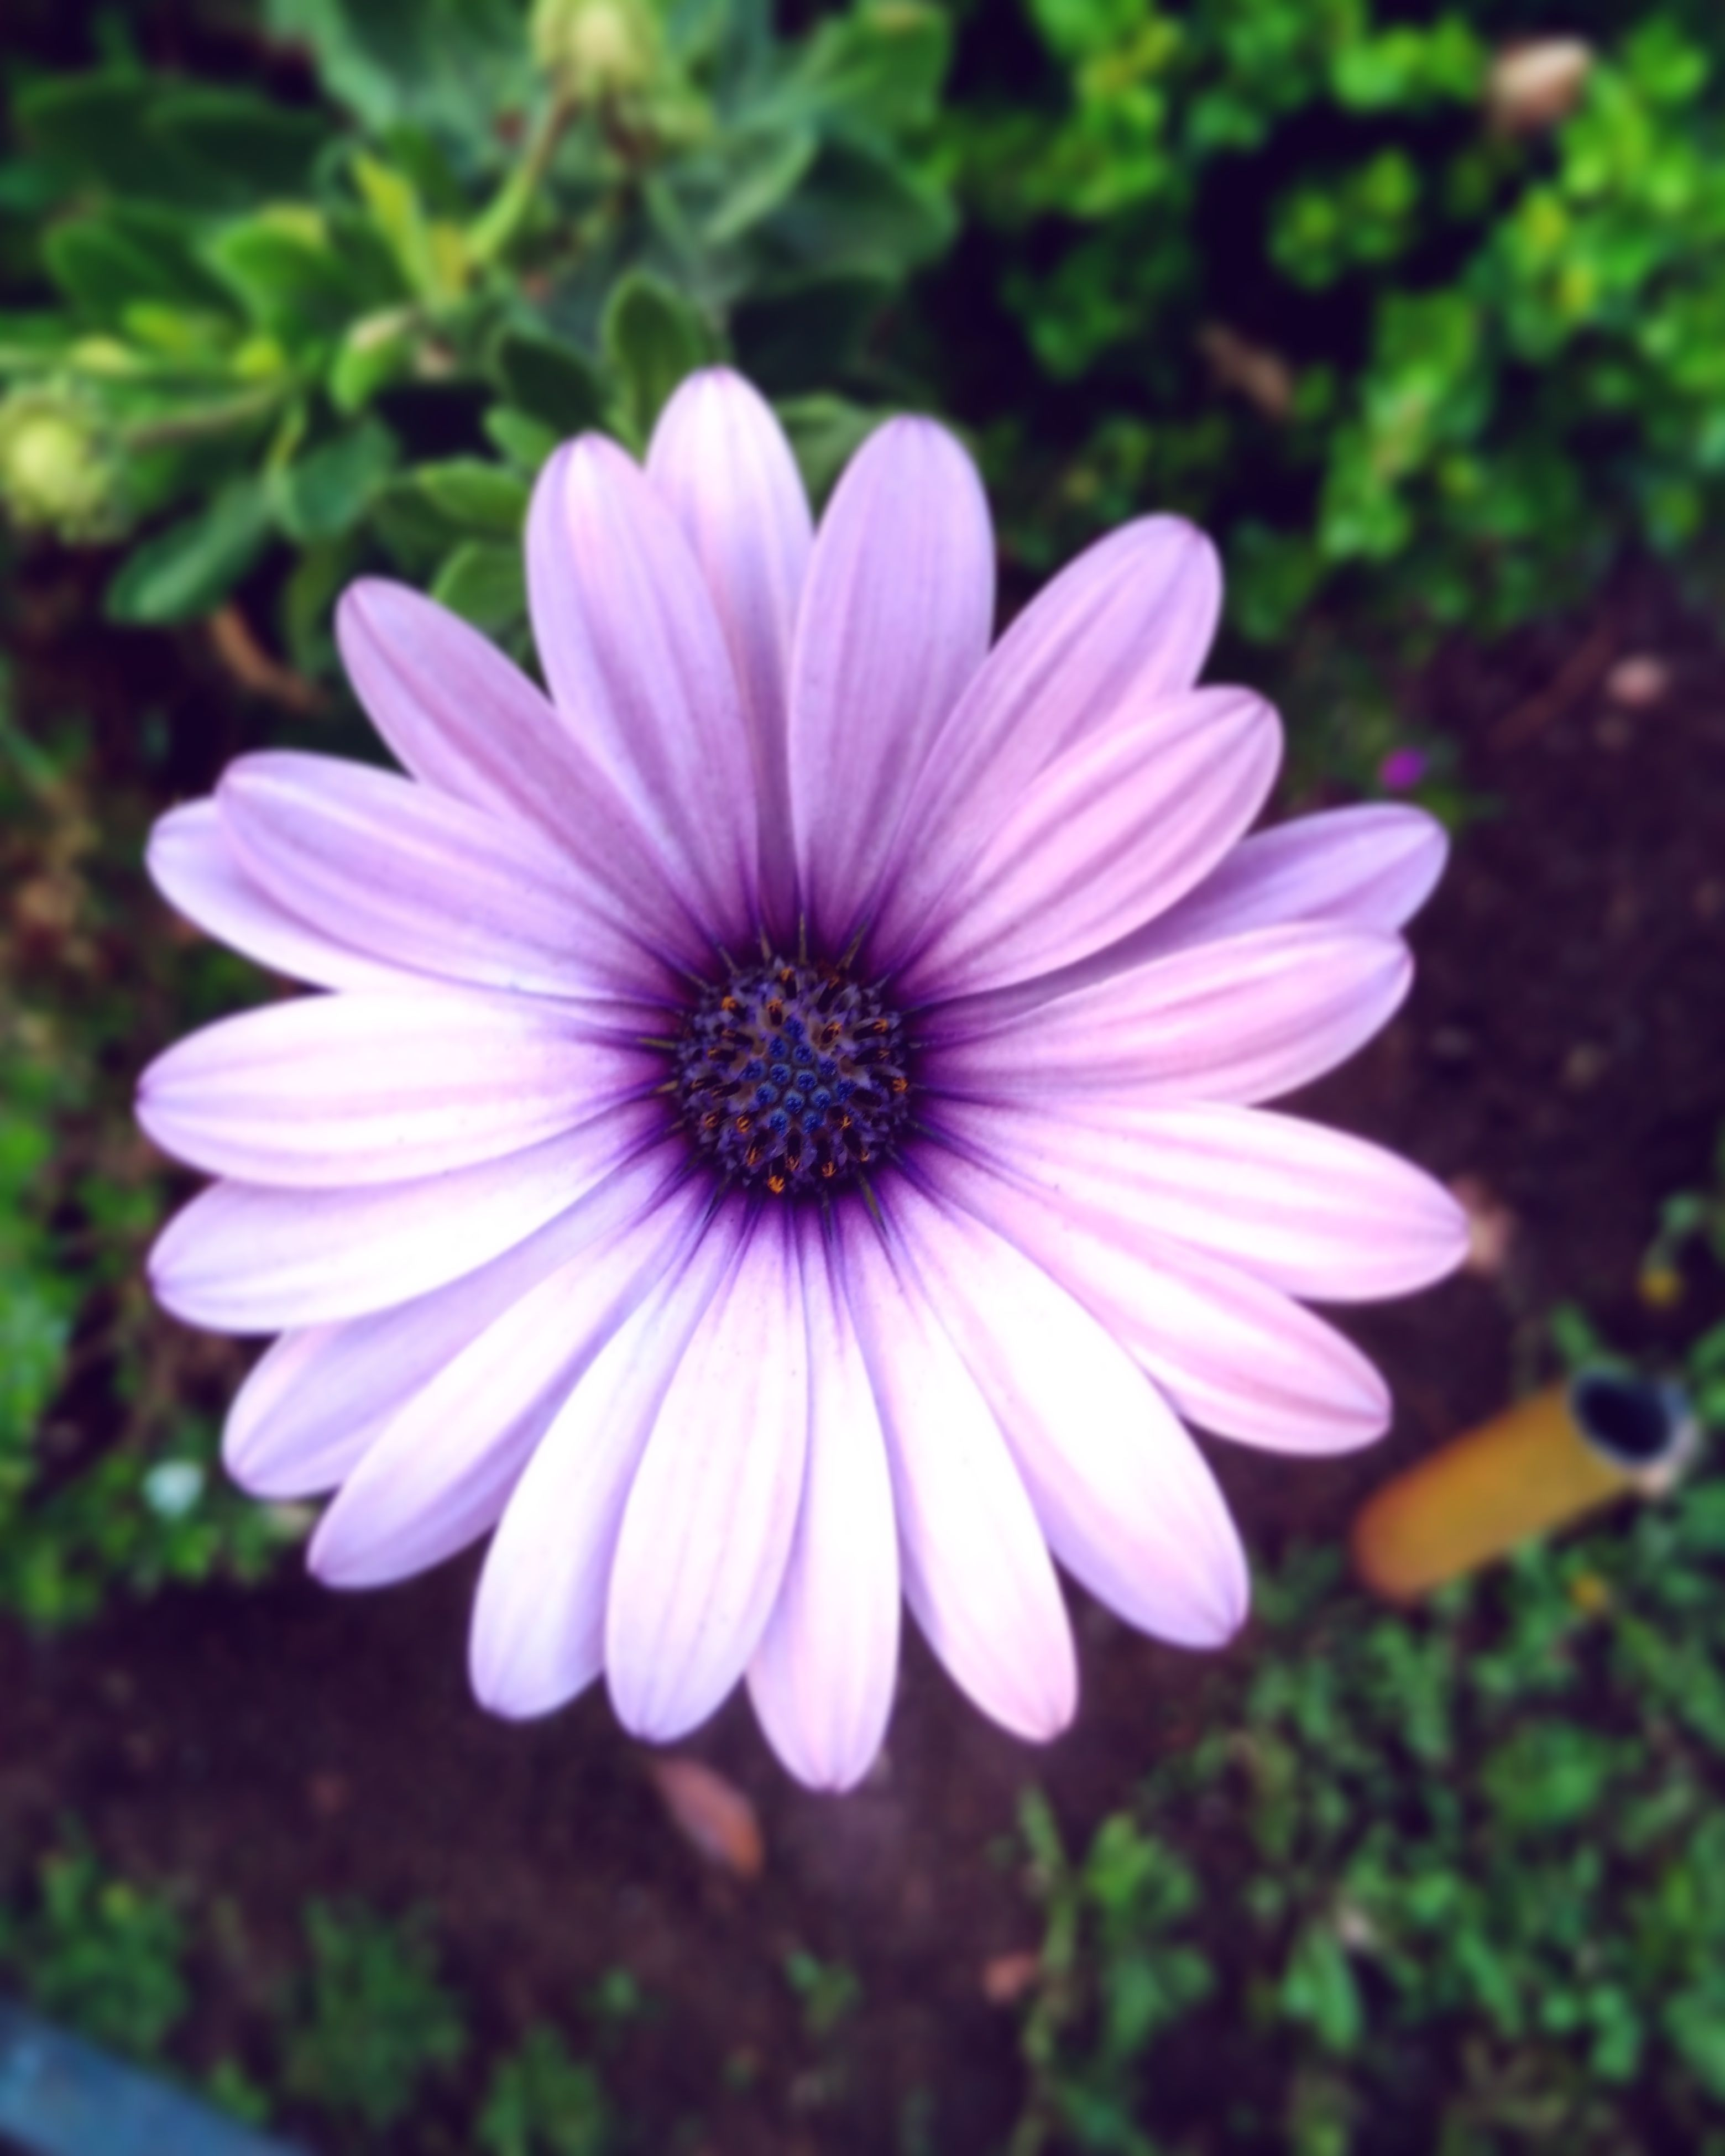 flower, fragility, freshness, petal, flower head, beauty in nature, nature, blooming, growth, focus on foreground, close-up, plant, osteospermum, no people, outdoors, day